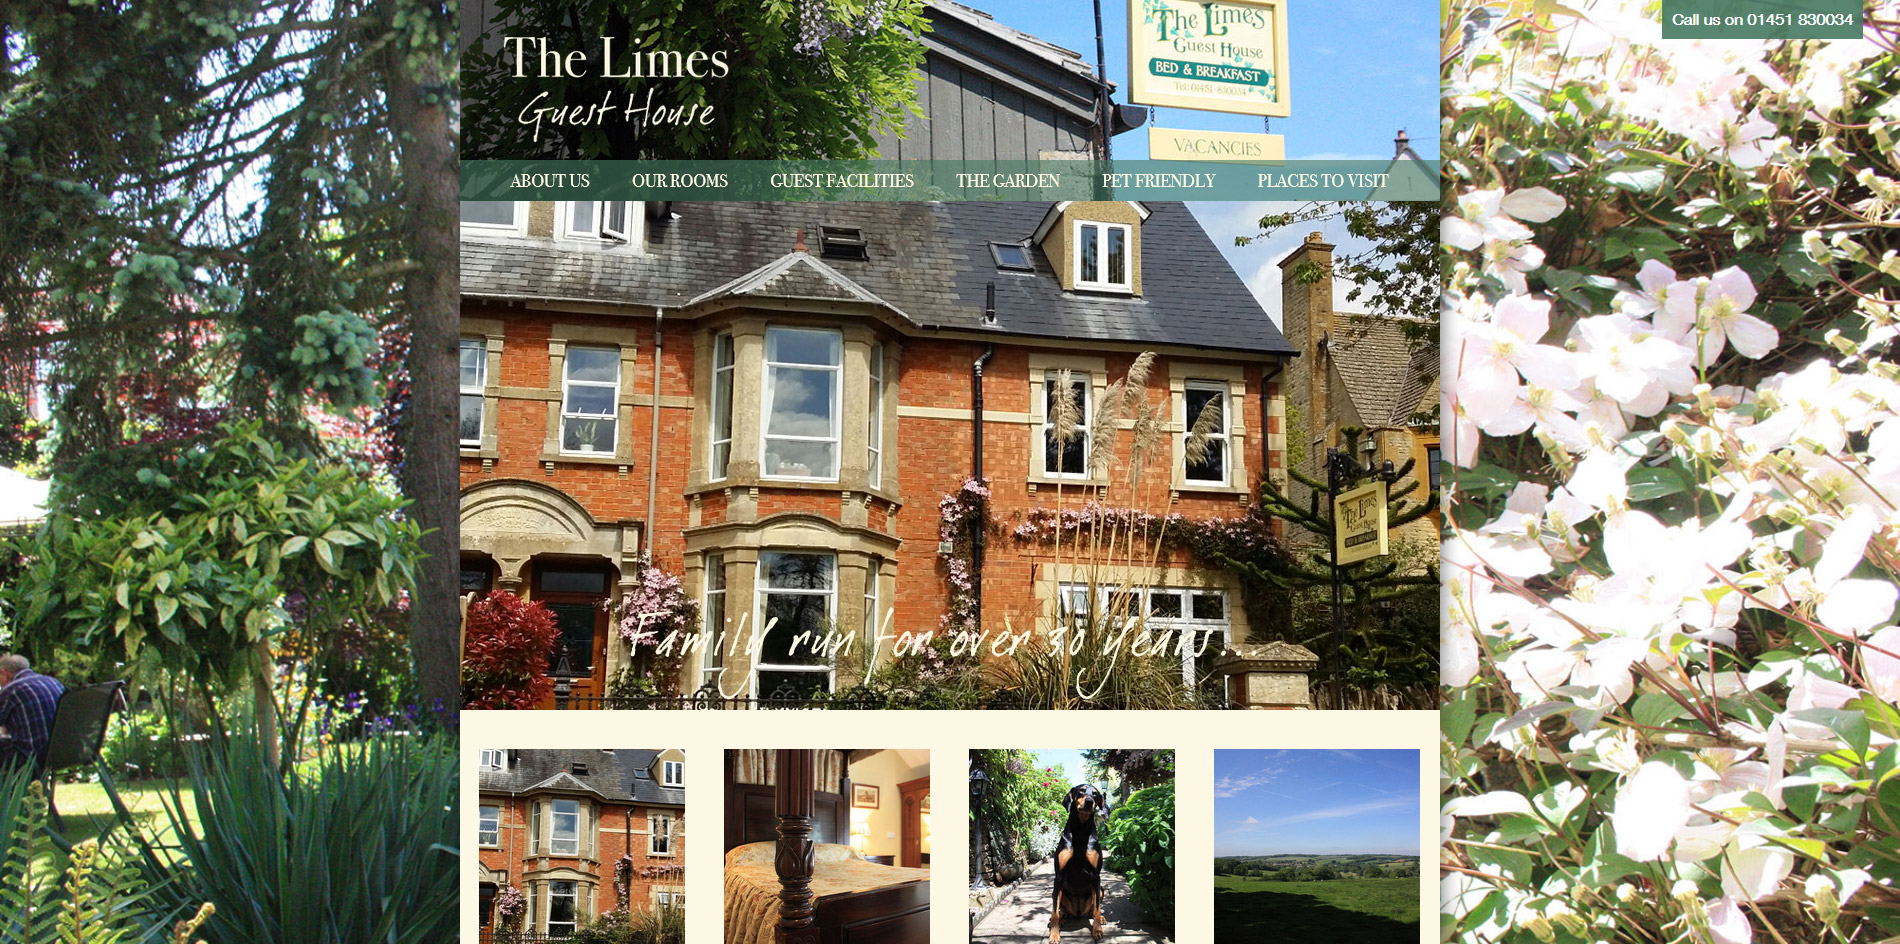 The Lime Guest House Website